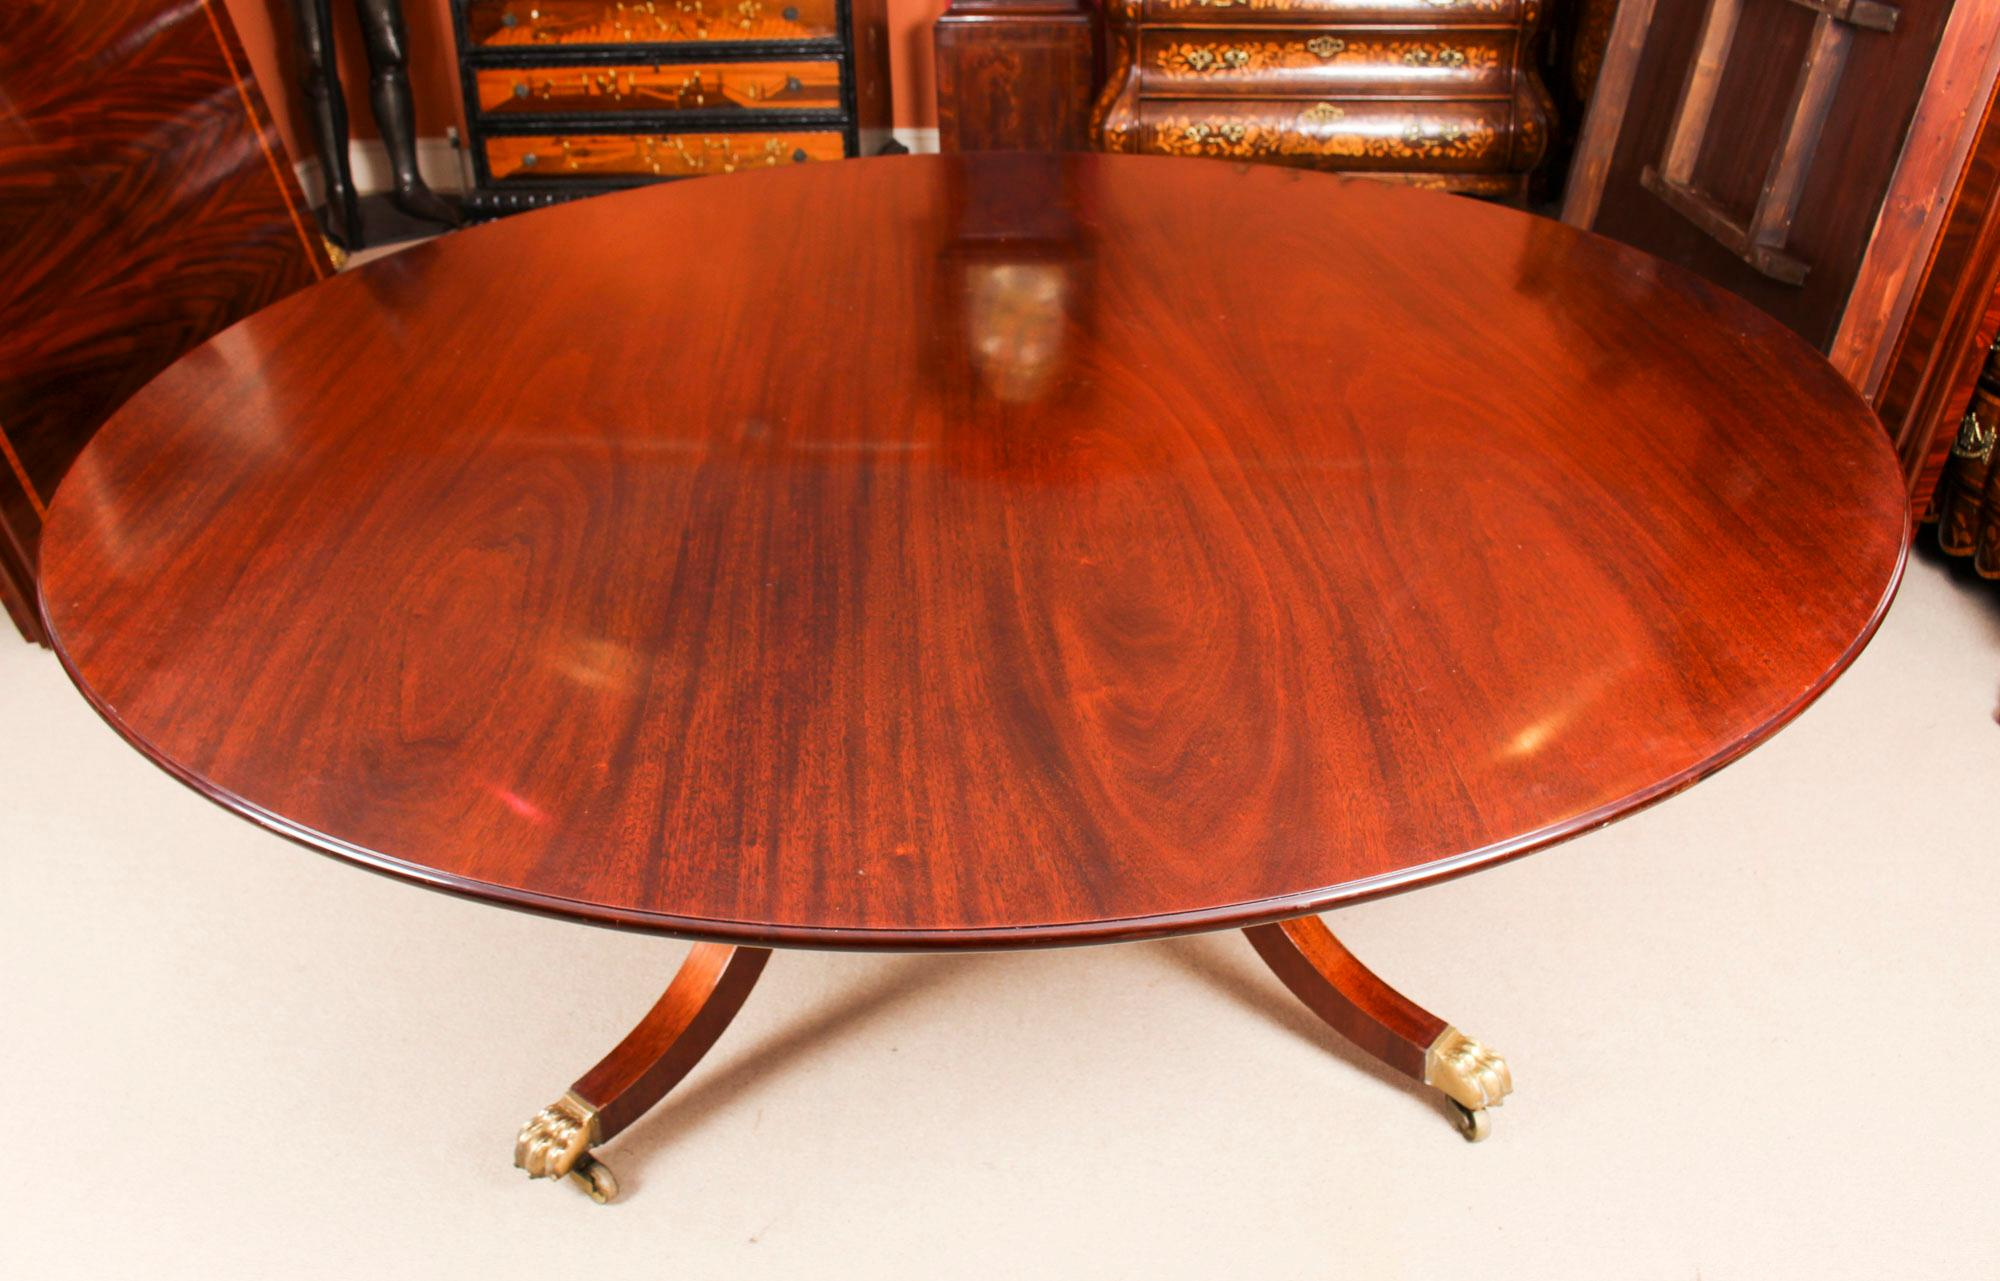 Round Table Orange.Vintage Round Table And 8 Bespoke Chairs William Tillman 20th Century